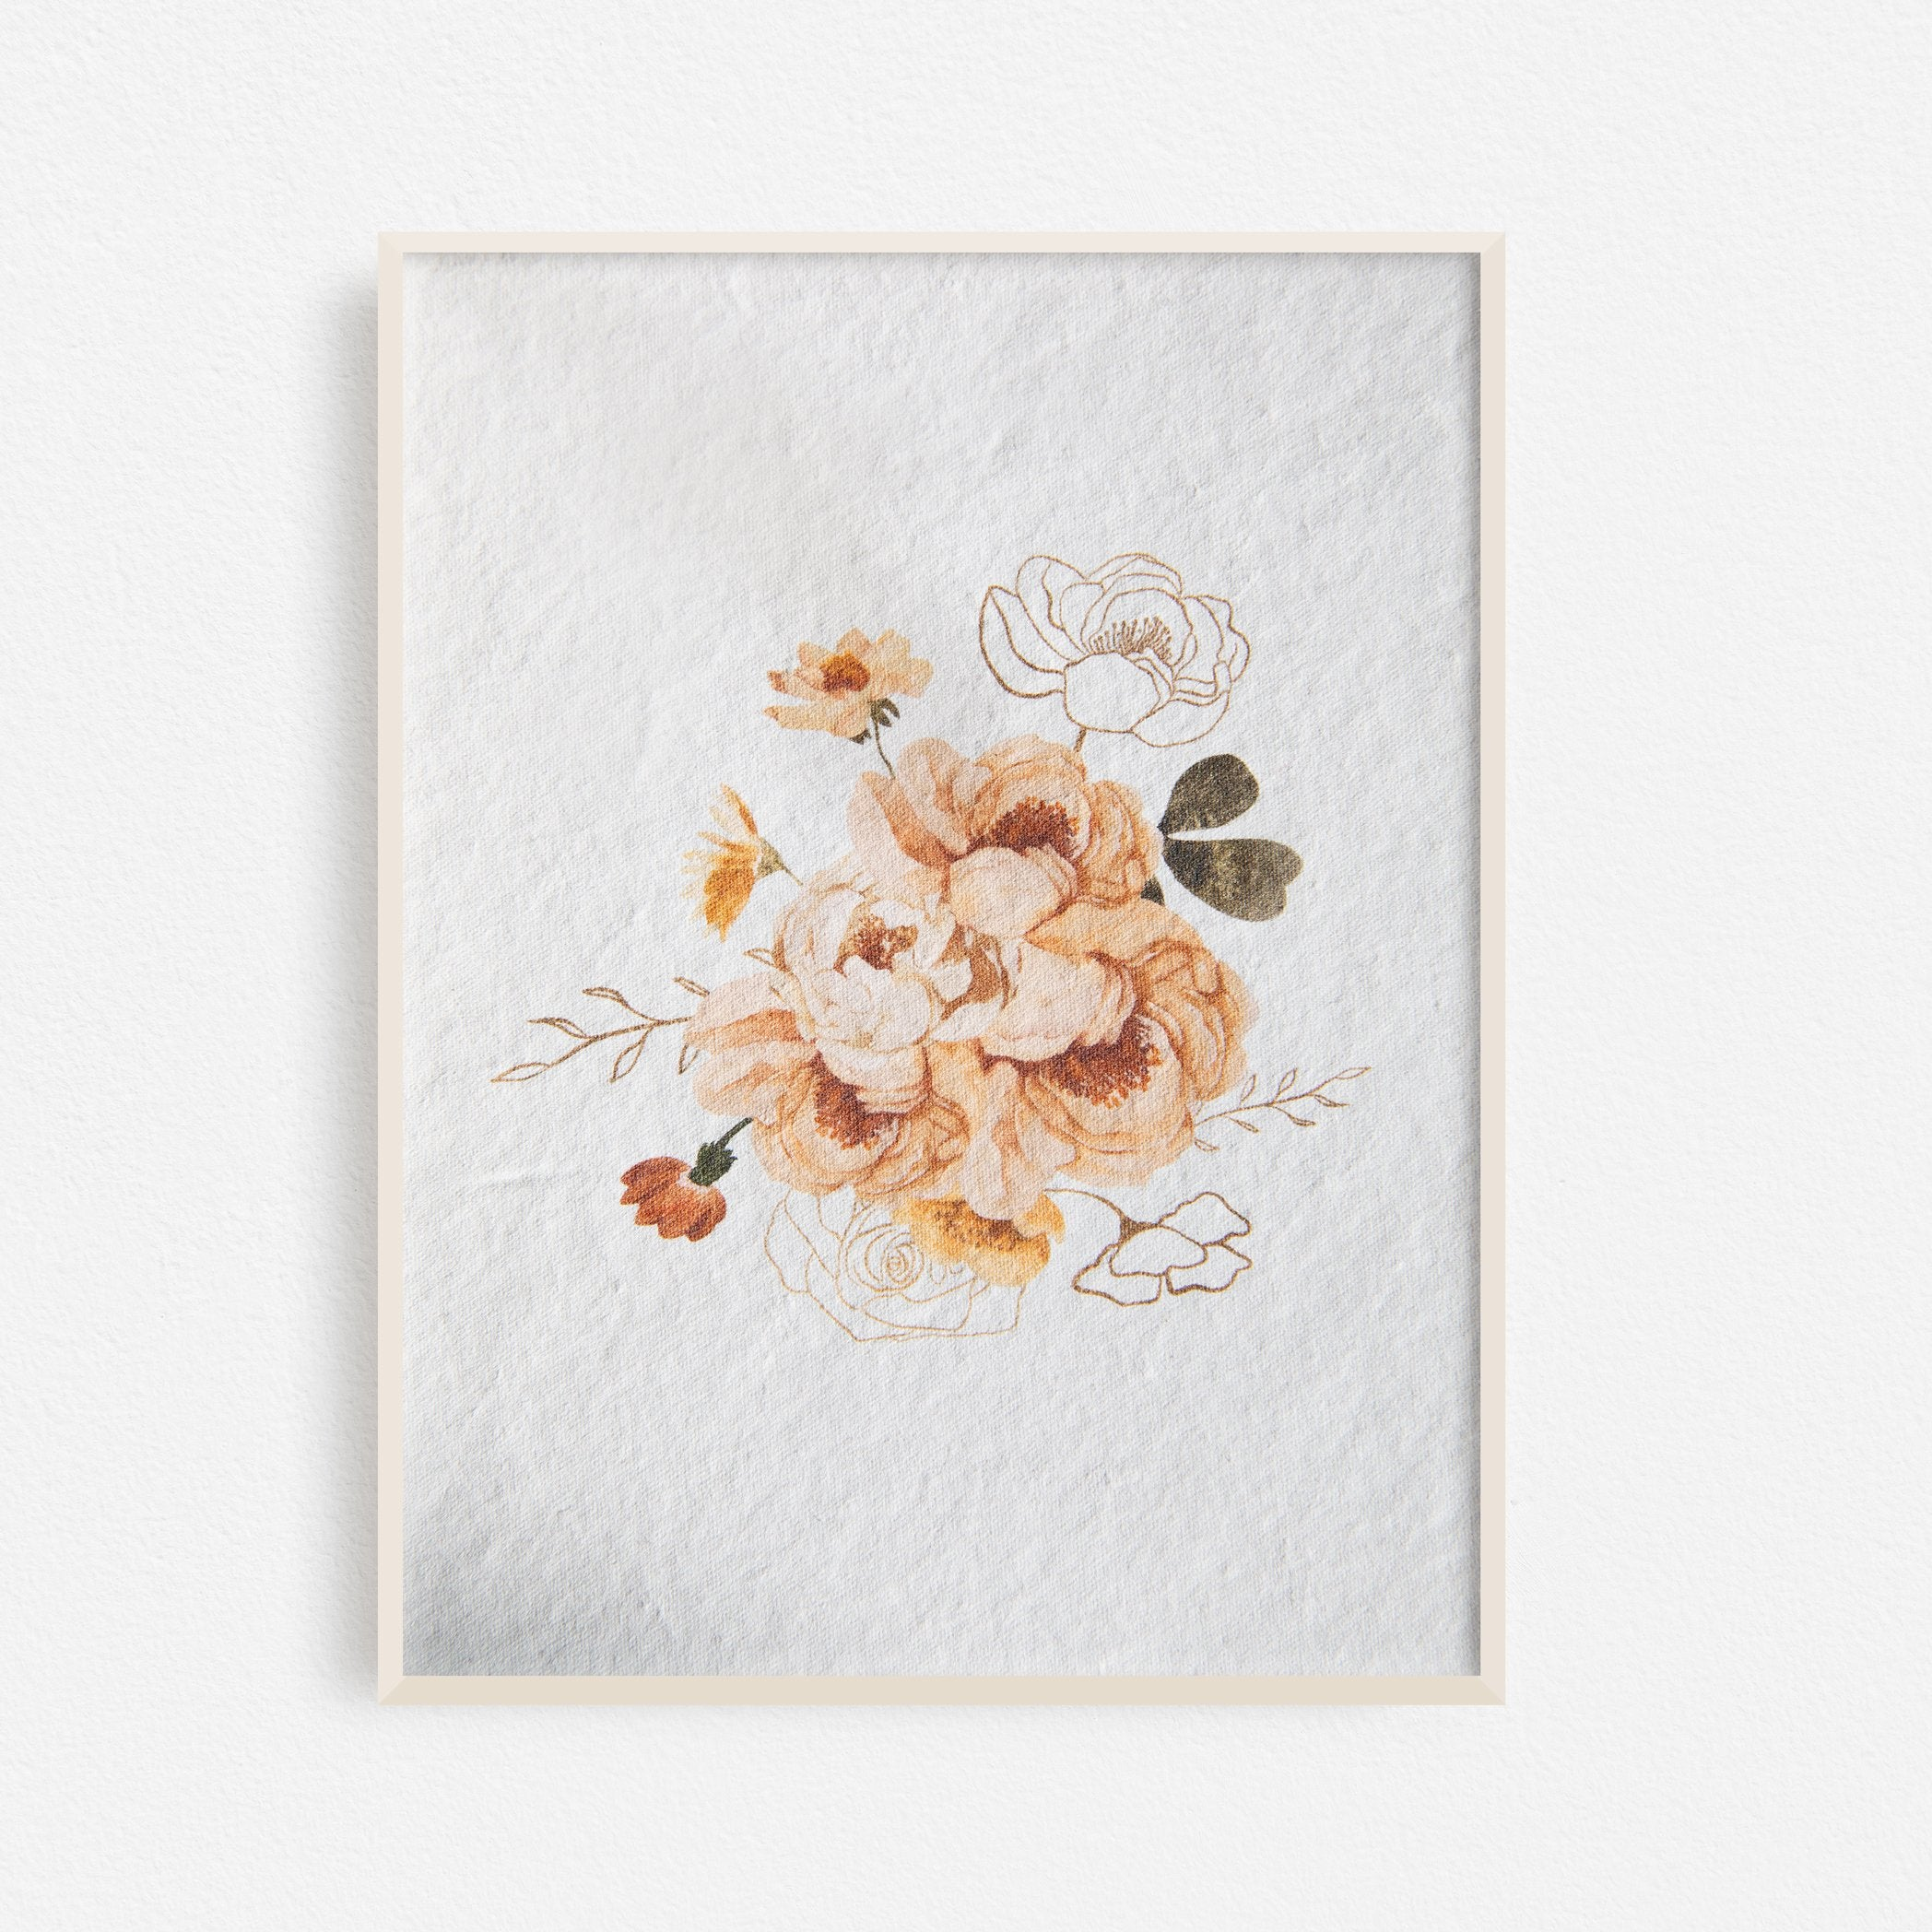 Autumn Flowers Bouquet Art Print No.1 - Feathers and Stone